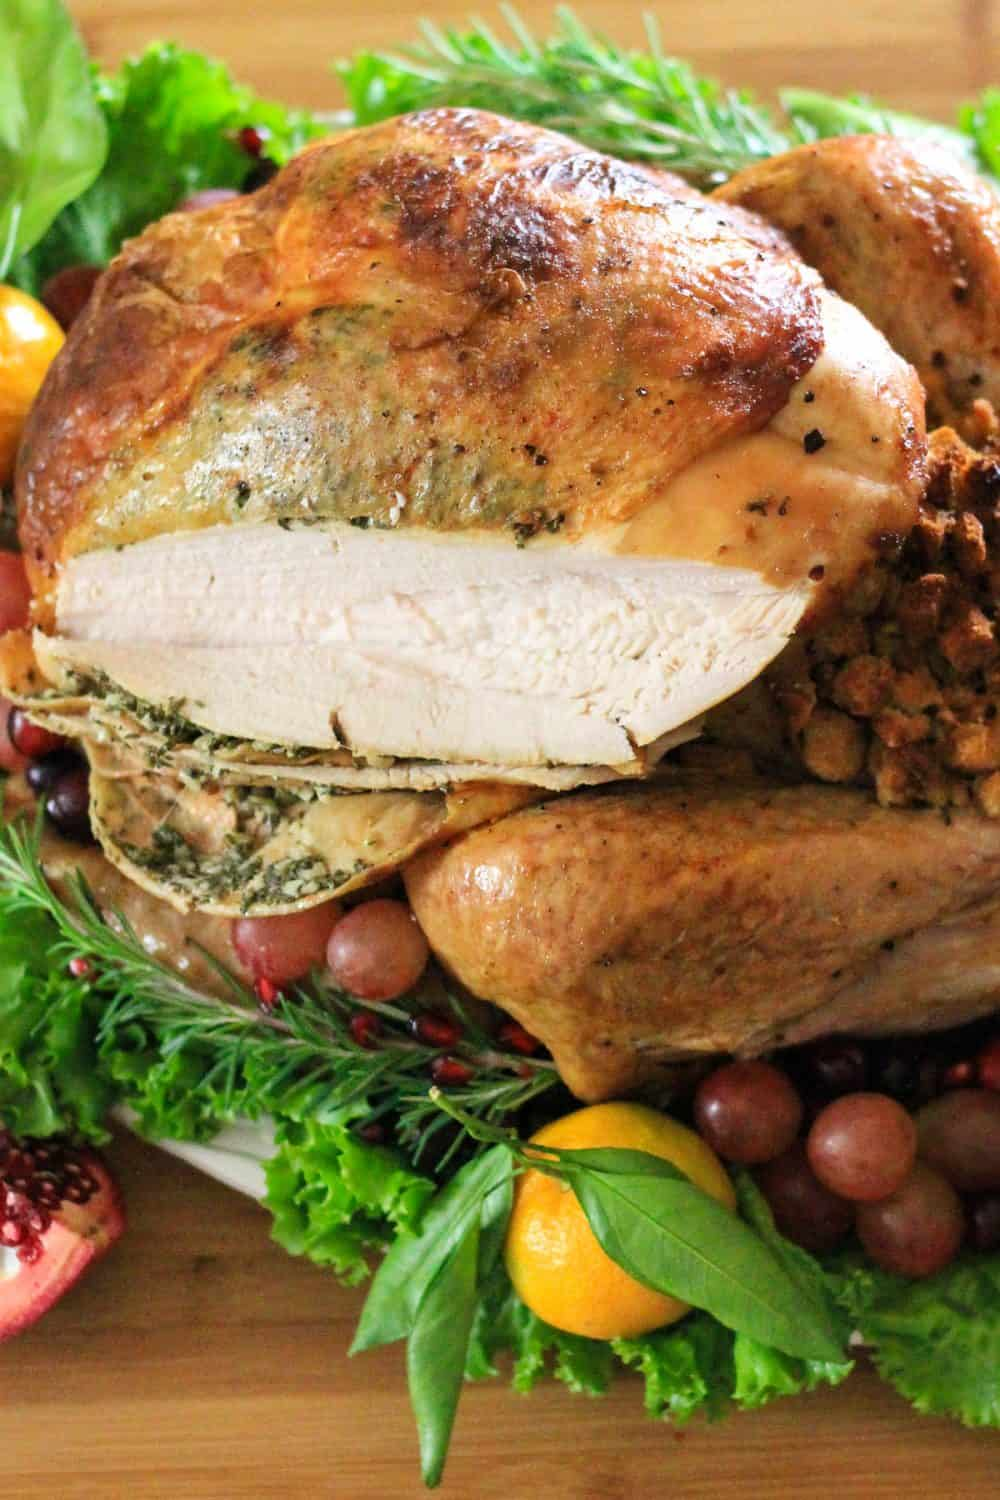 a close up image of a roasted thanksgiving turkey sliced open with rosemary and grapes beside it